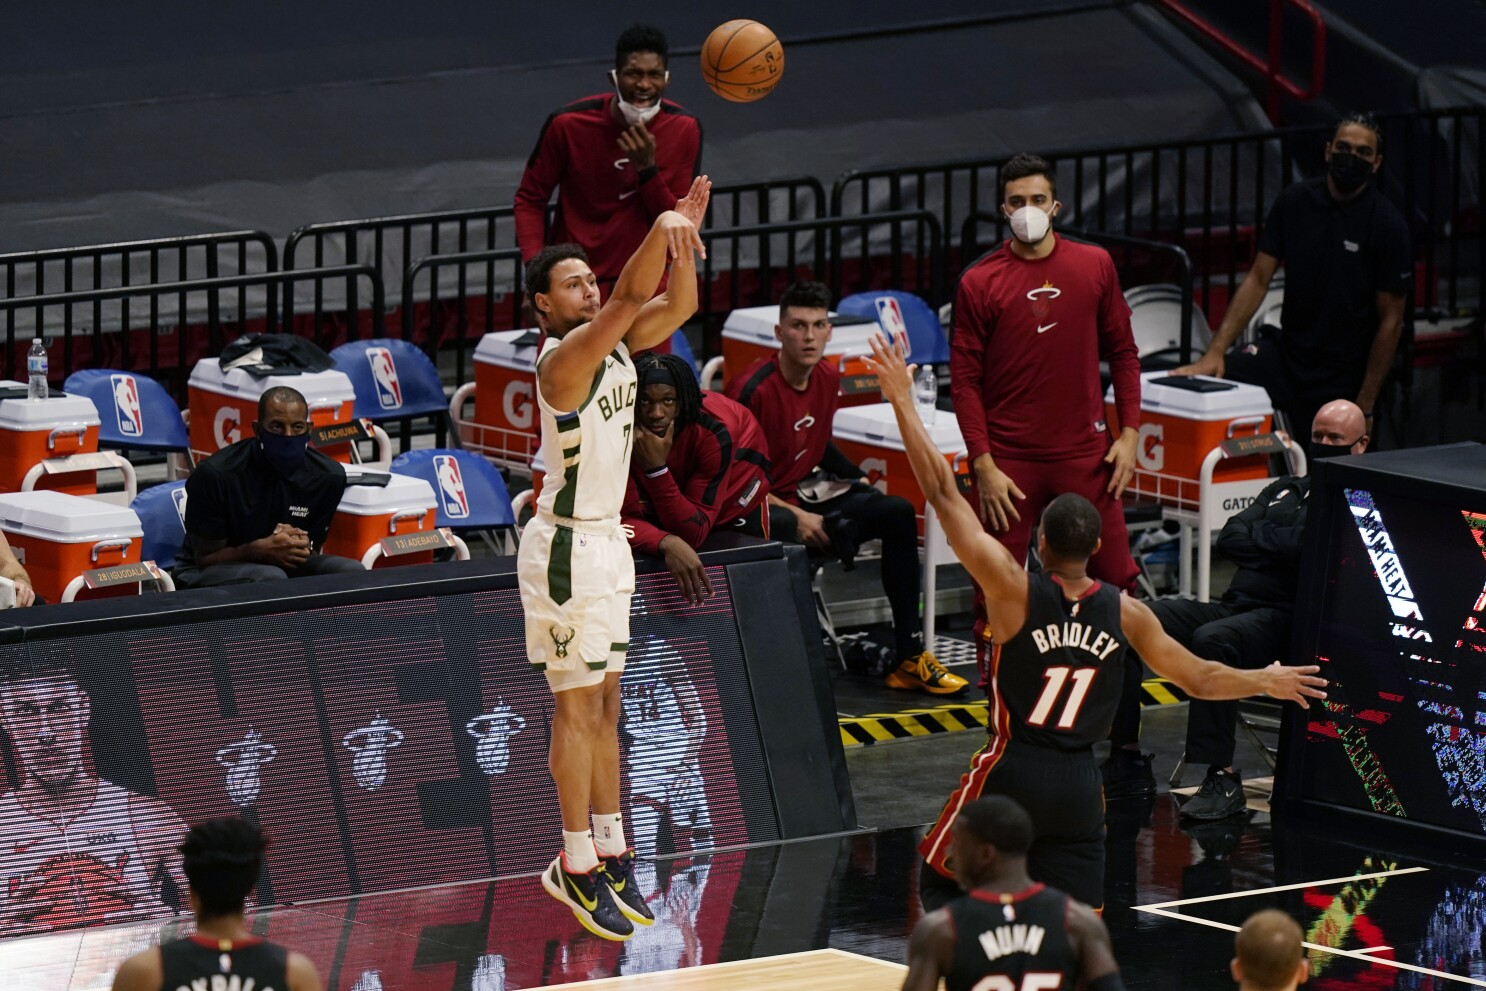 NBA: Bucks set NBA record for 3s with 29 in romp over Heat - Los Angeles Times